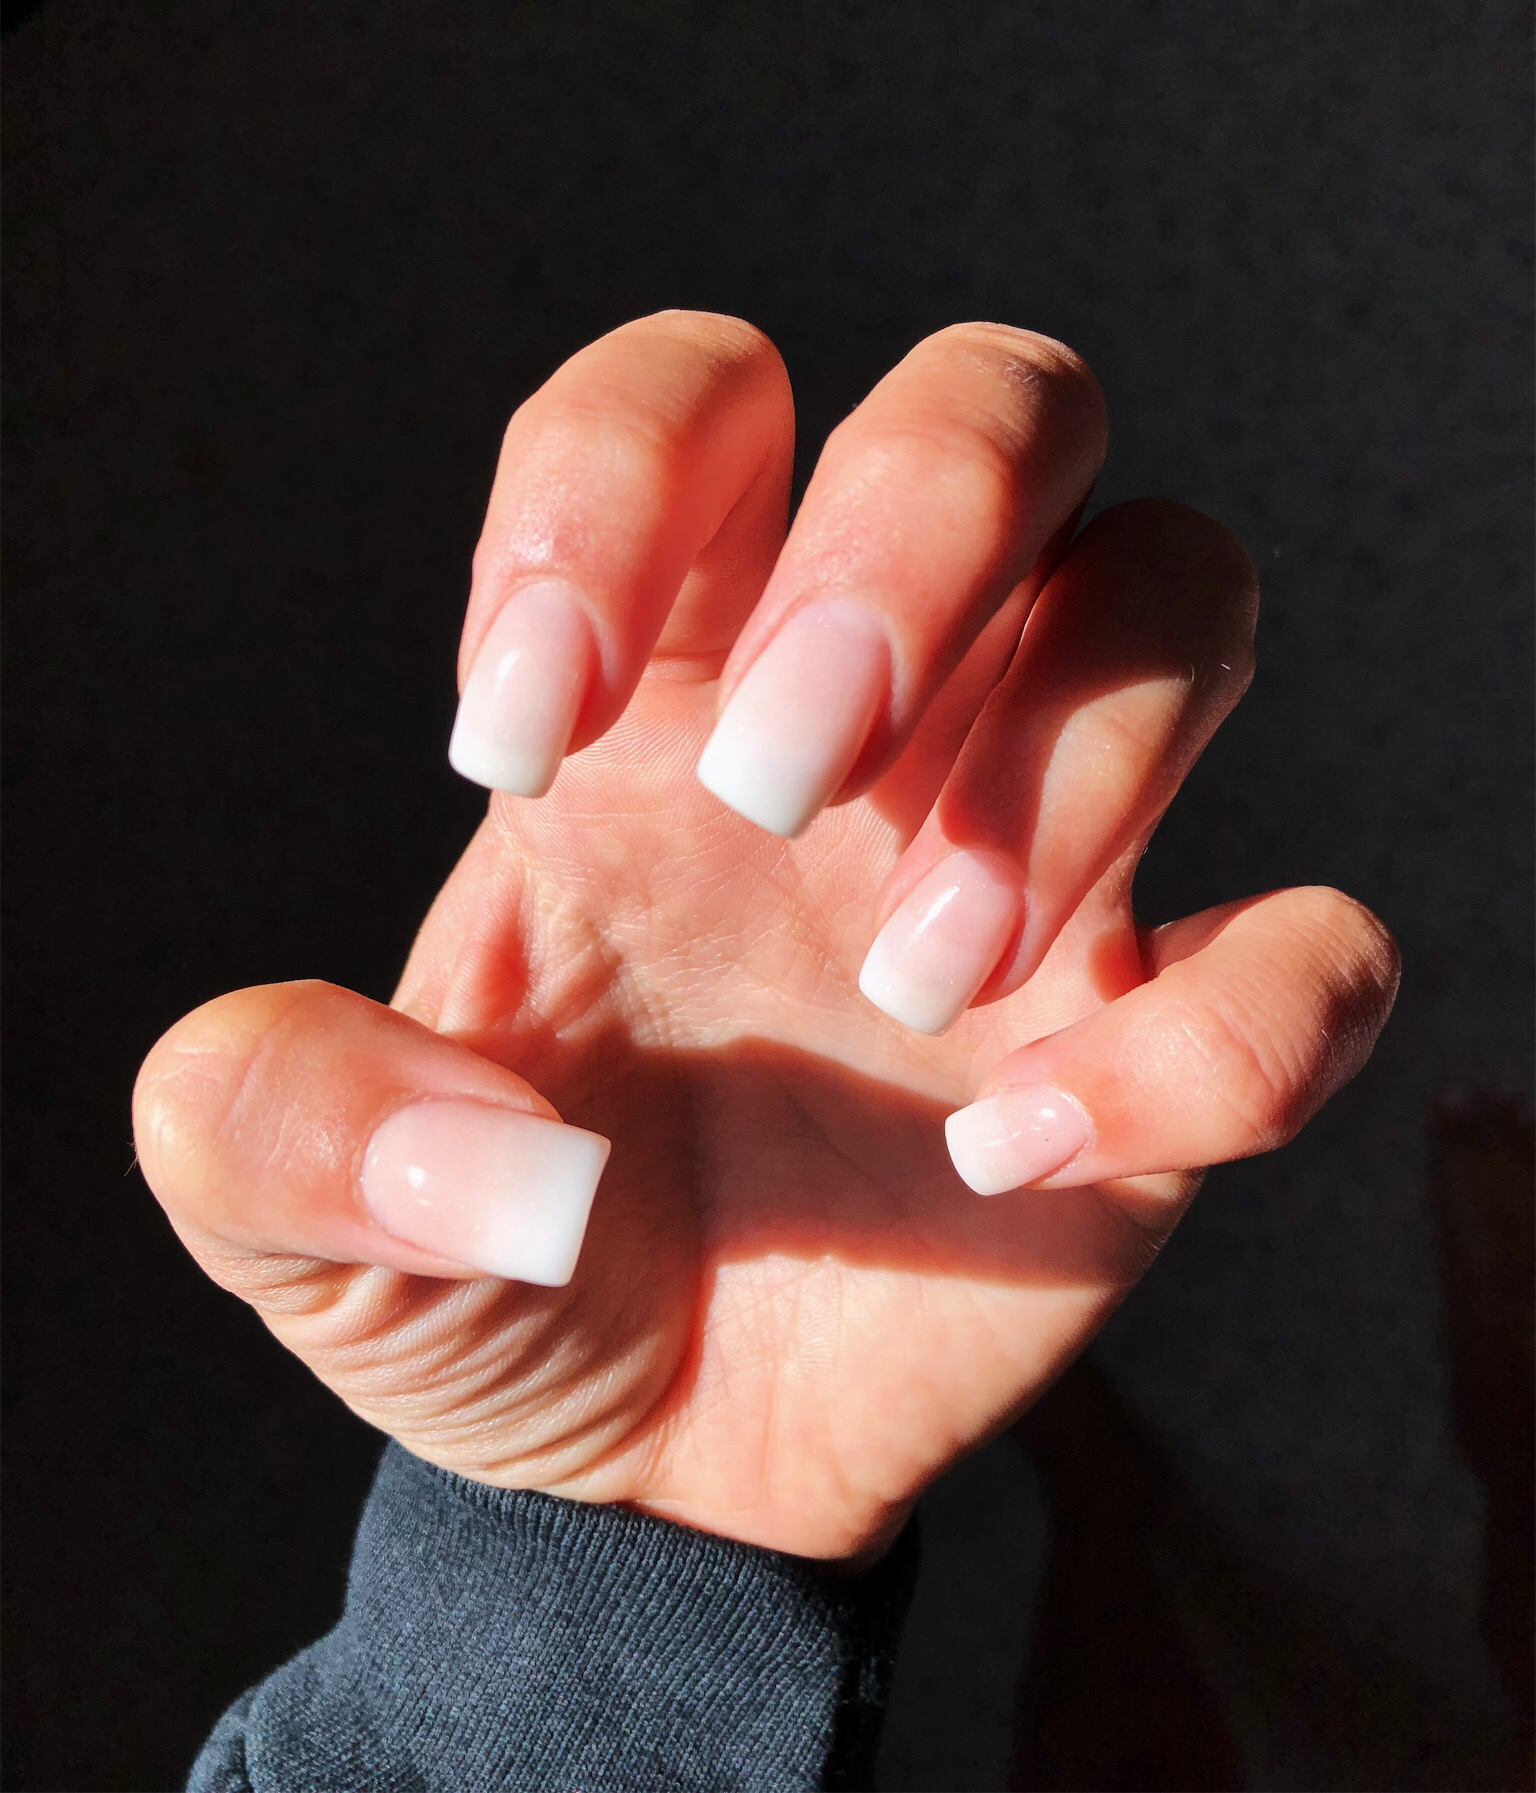 VSCO , Who would\u0027ve thought them nails real cause my nail